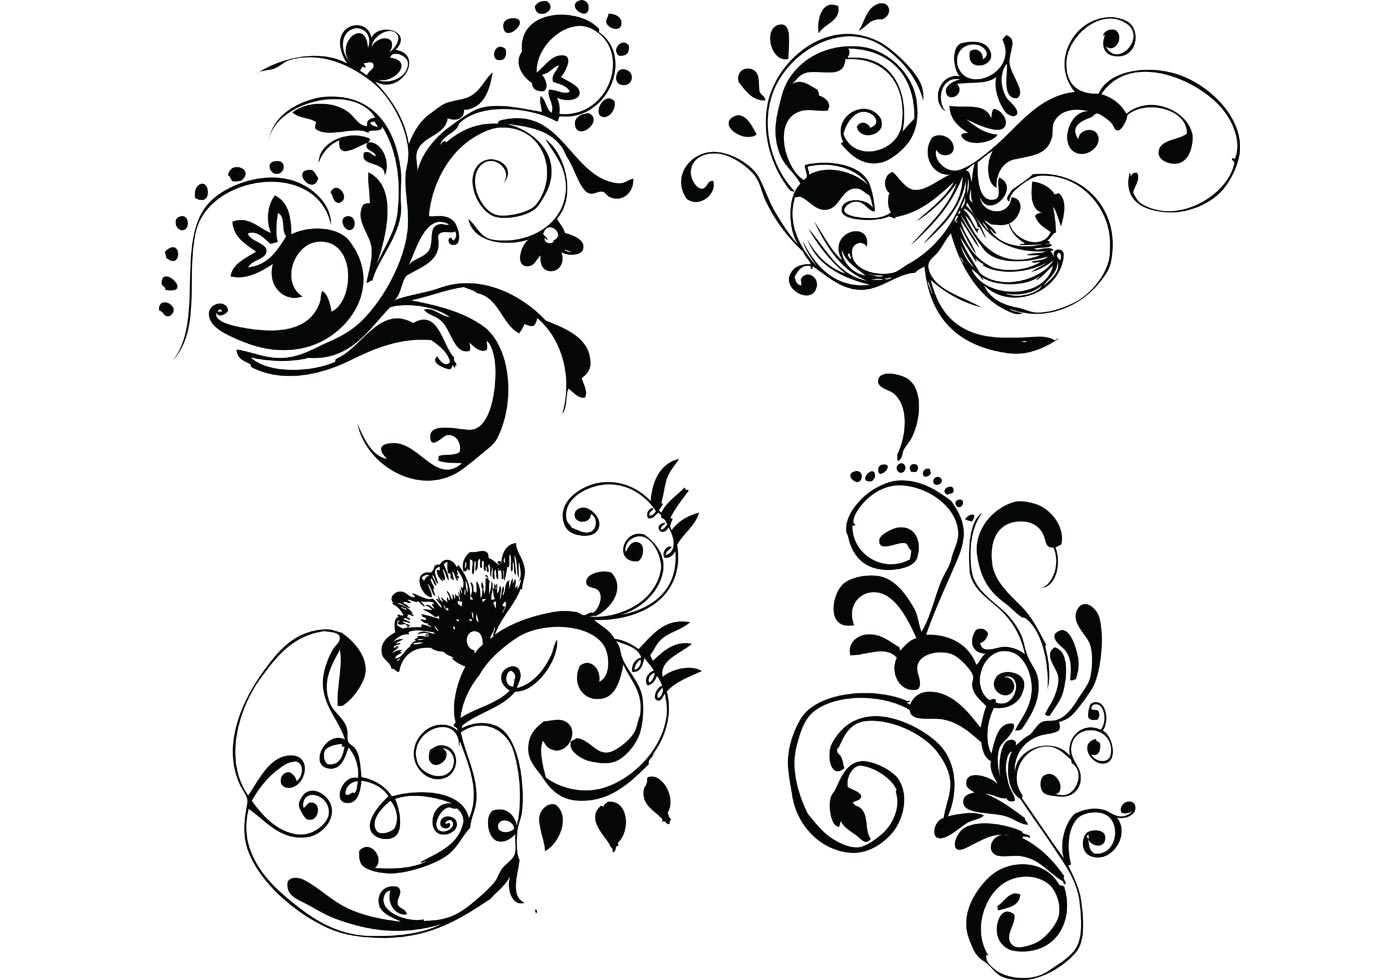 Hand Drawn Floral Free Vector Images